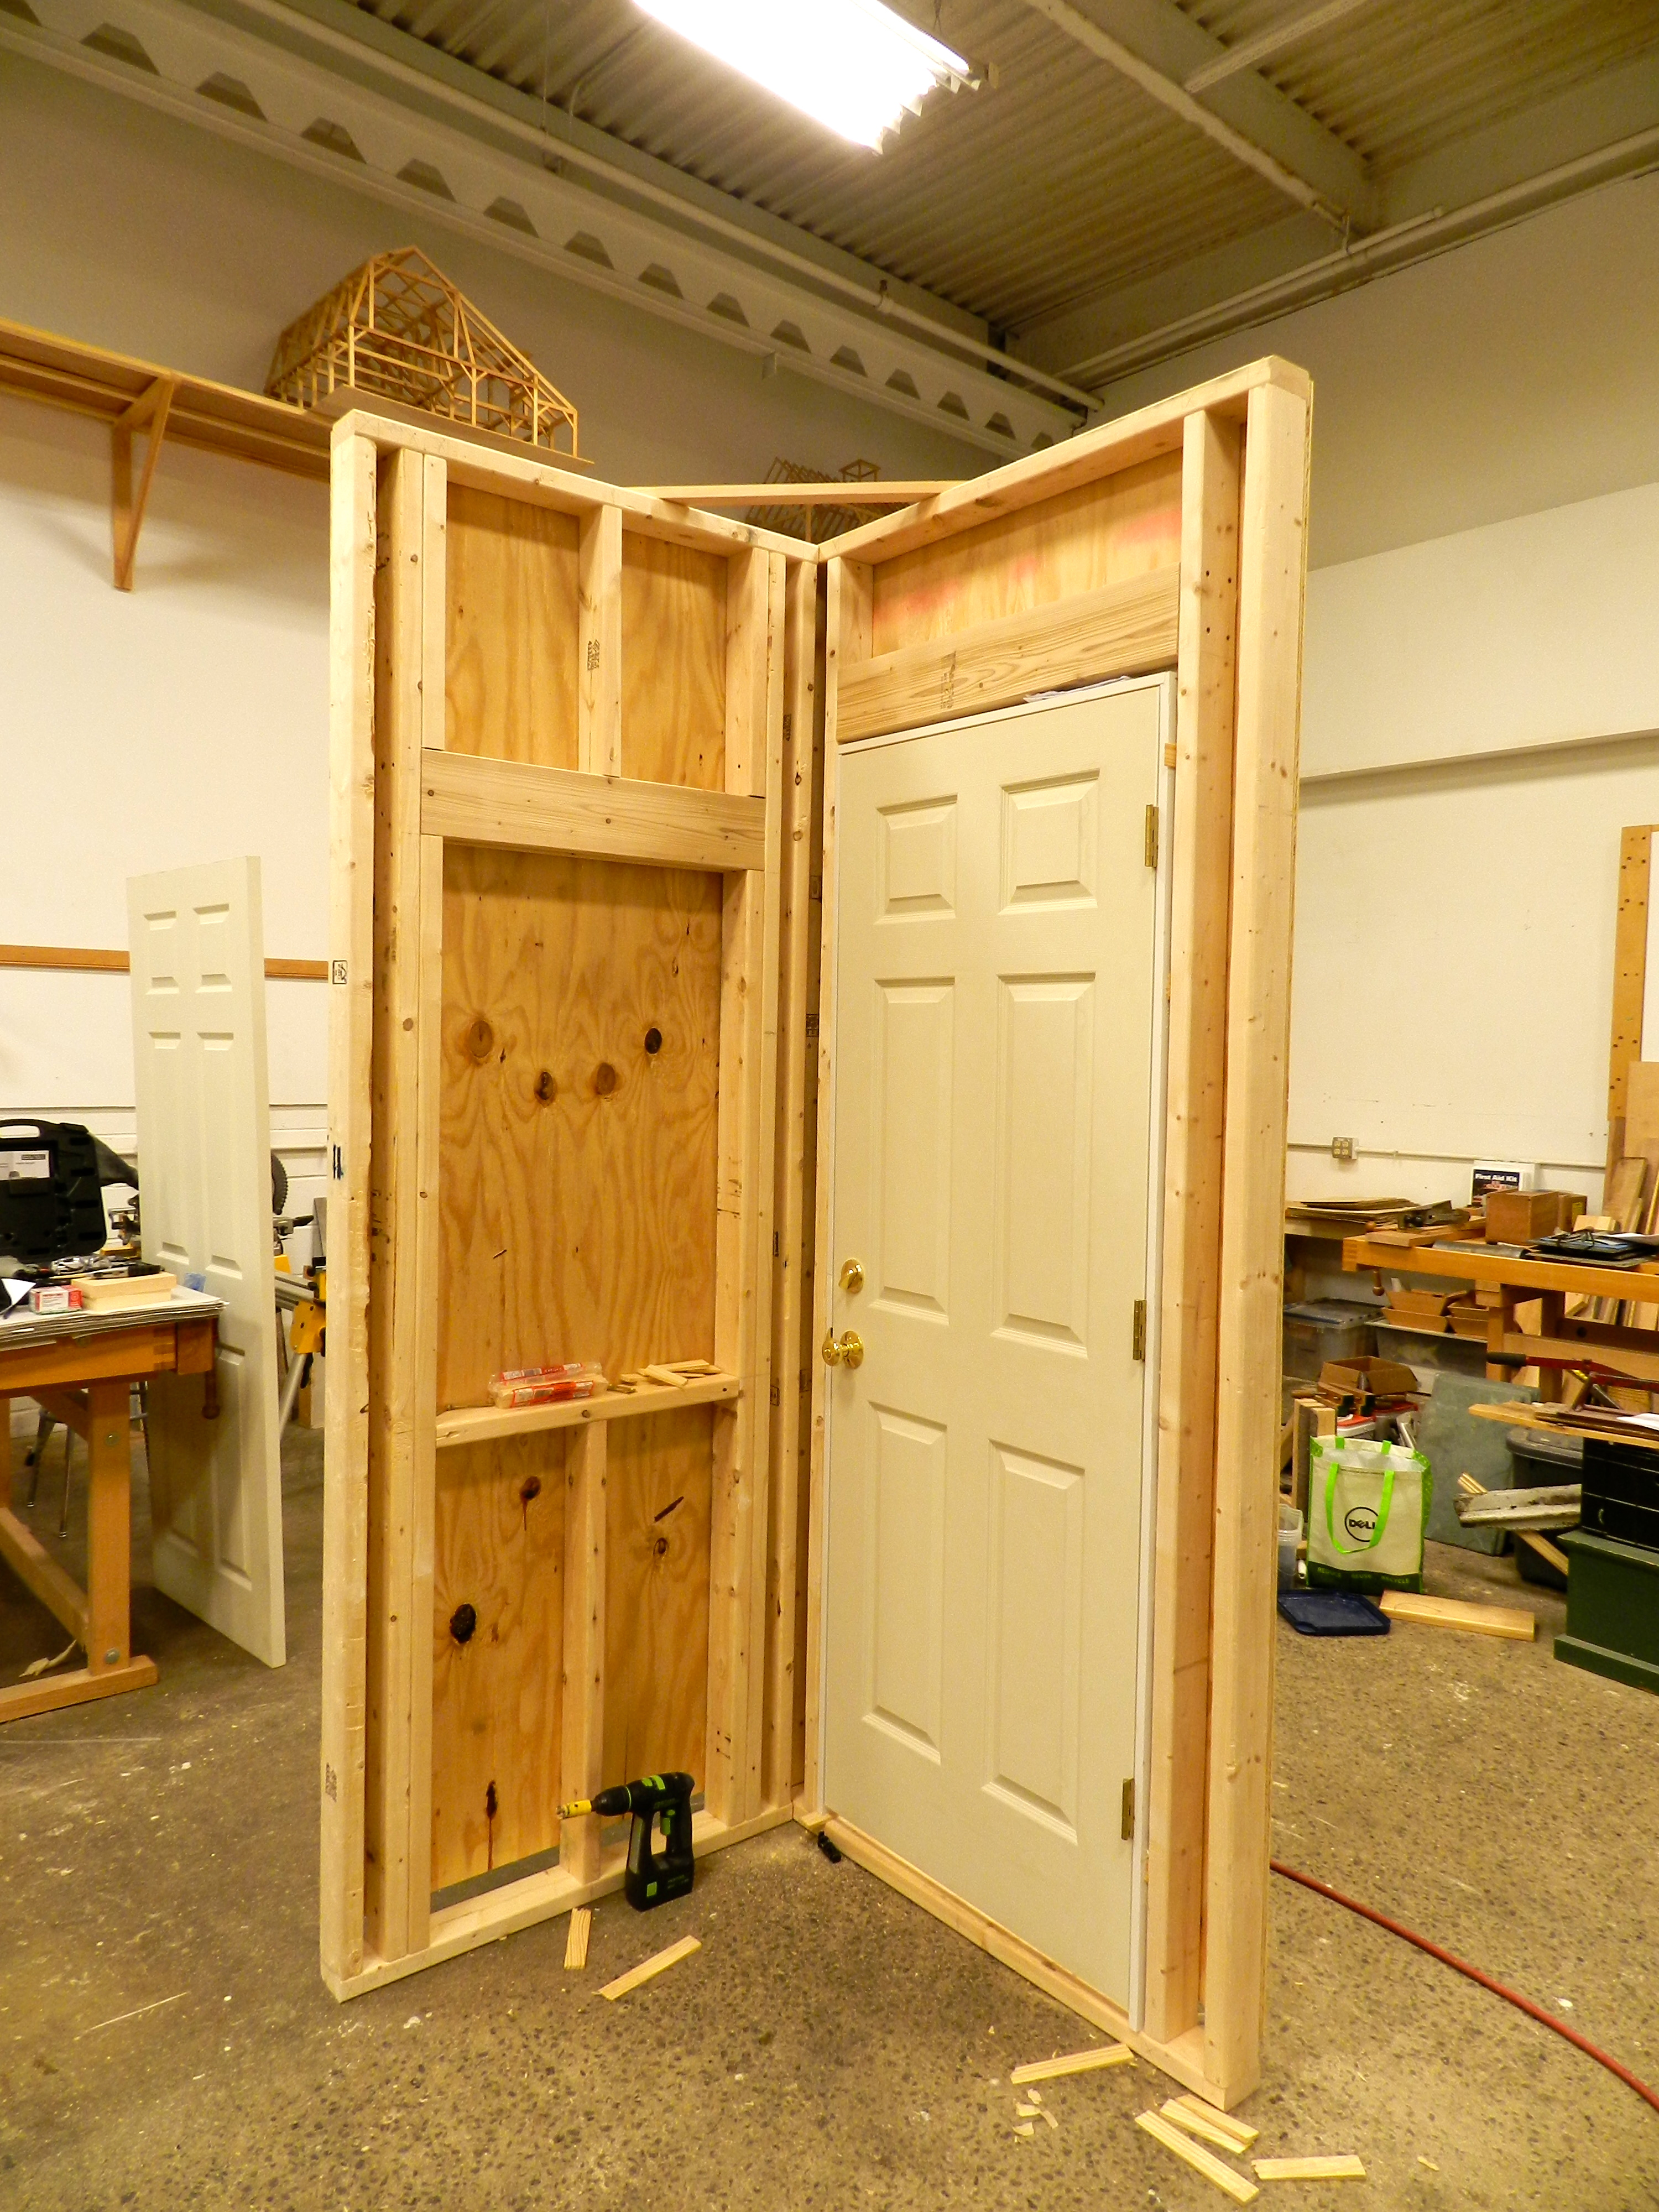 Door and Window Framing Mockup & Door Installation | Rainford Restorations Pezcame.Com